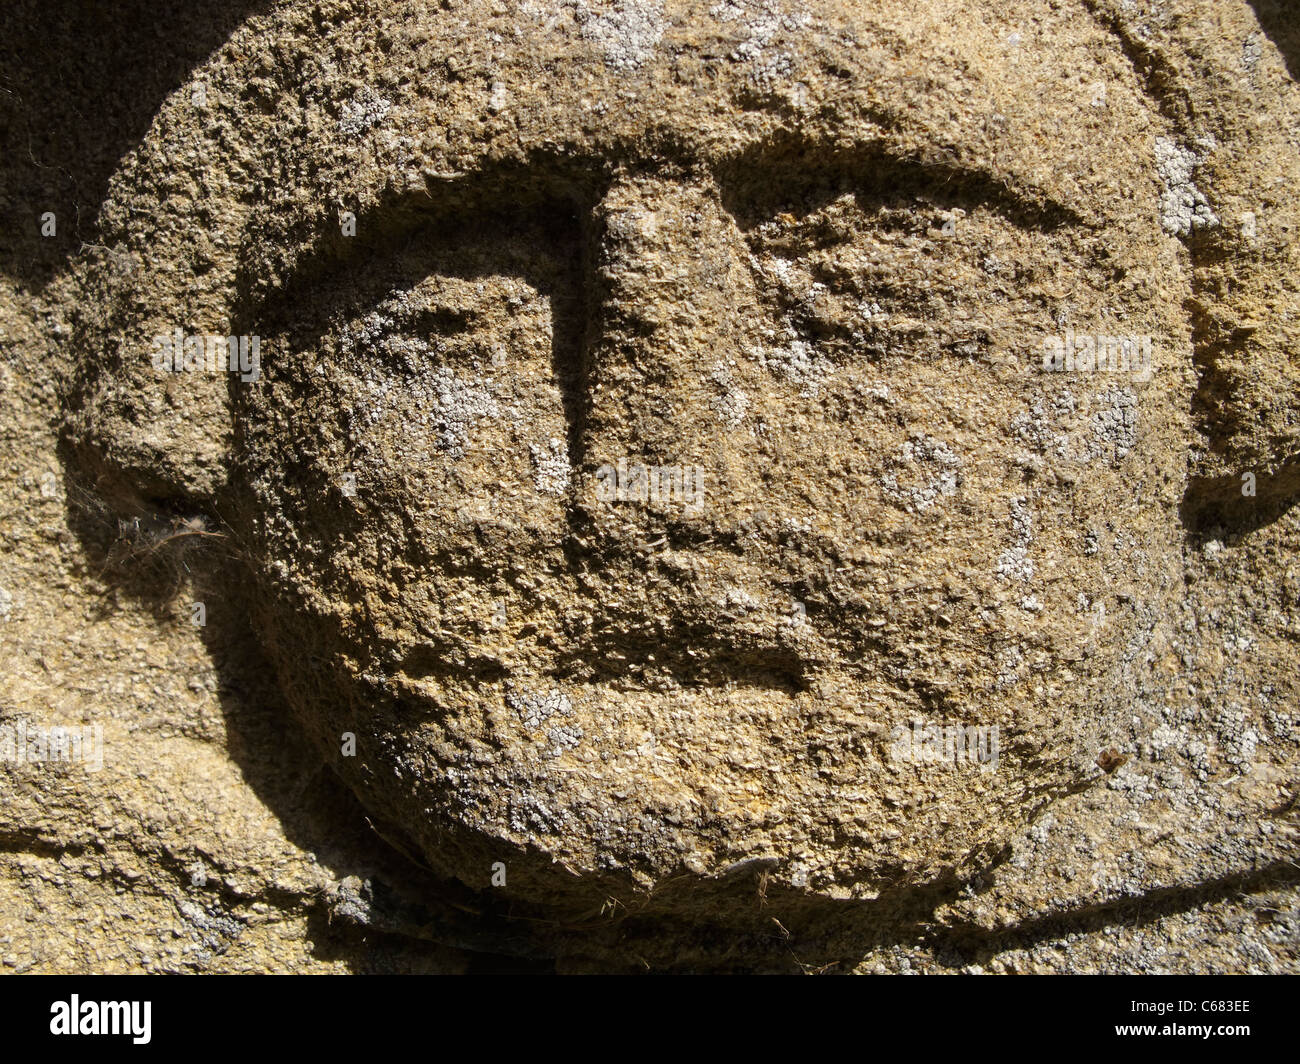 An old carved headstone depicting a face at St Wilfrid's church, Honington, Lincolnshire, England. - Stock Image